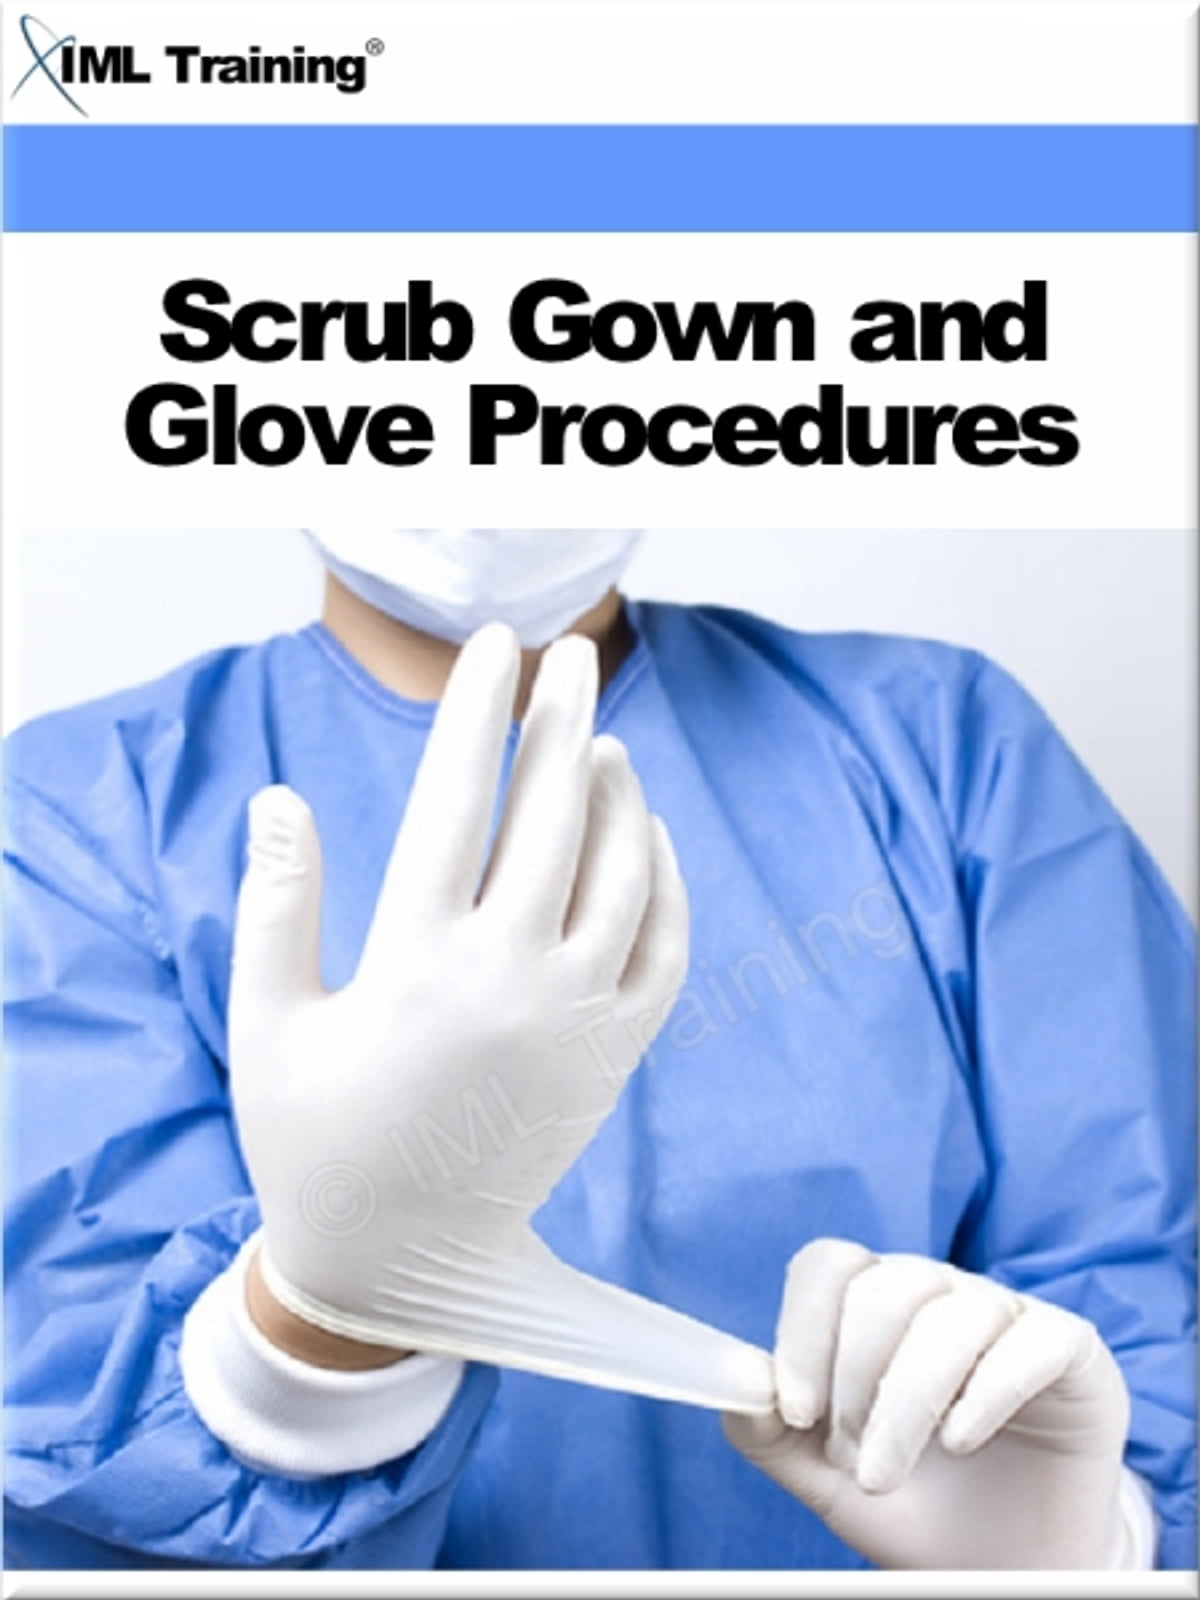 Scrub Gown and Glove Procedures (Surgical) eBook by - 9781782580751 ...